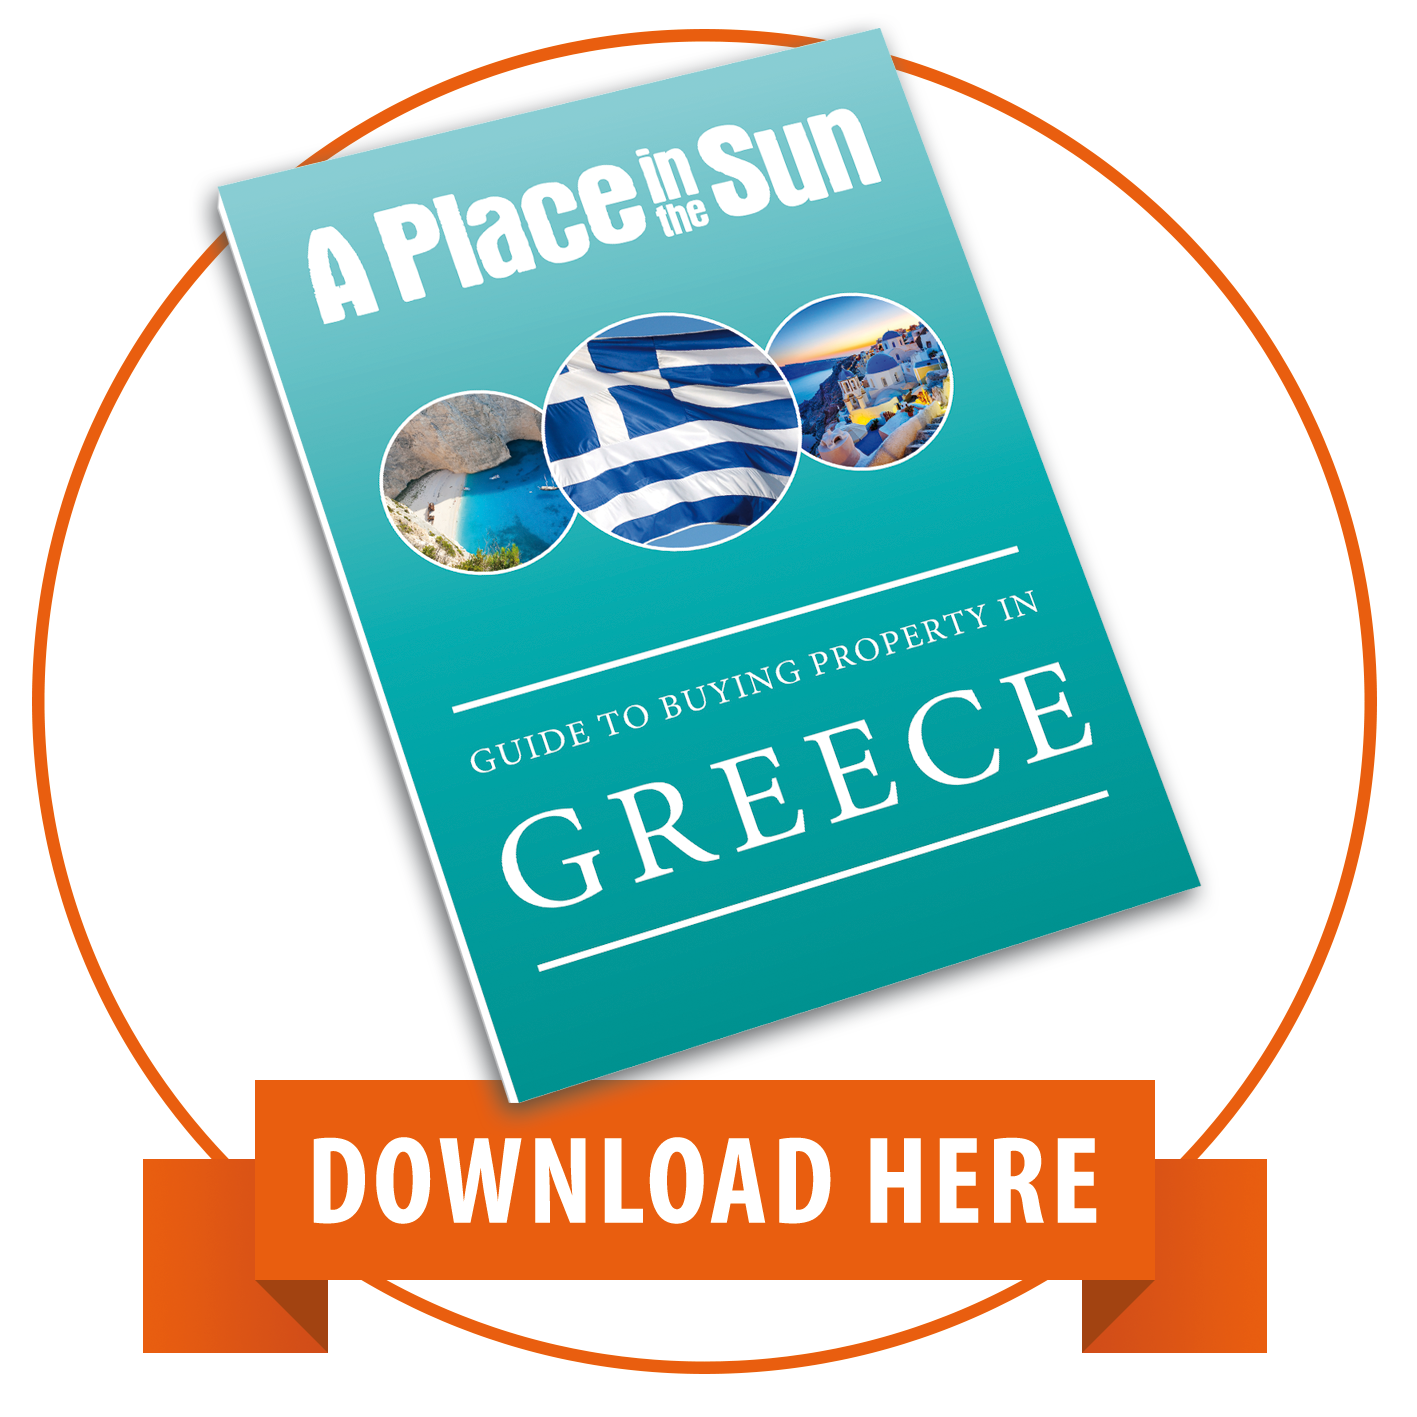 download the greece buying guide here